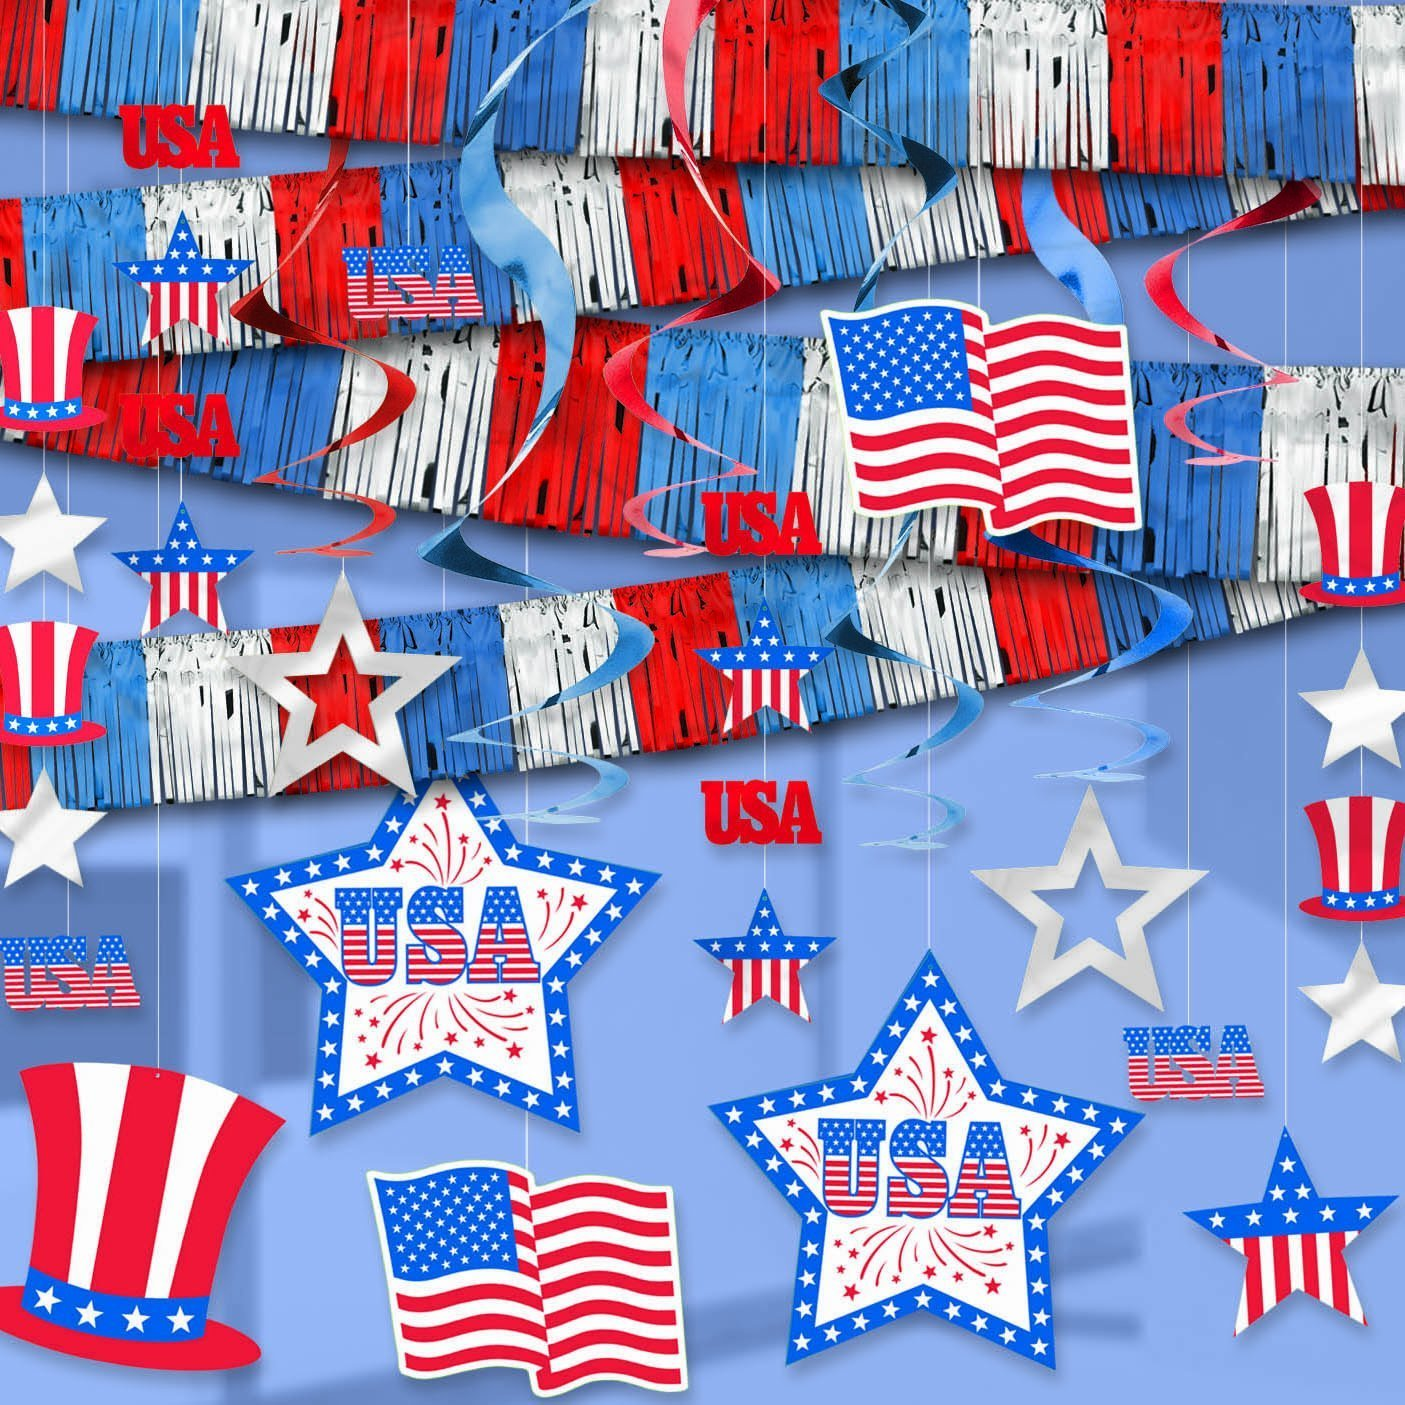 Patriotic Room Decorating Kit